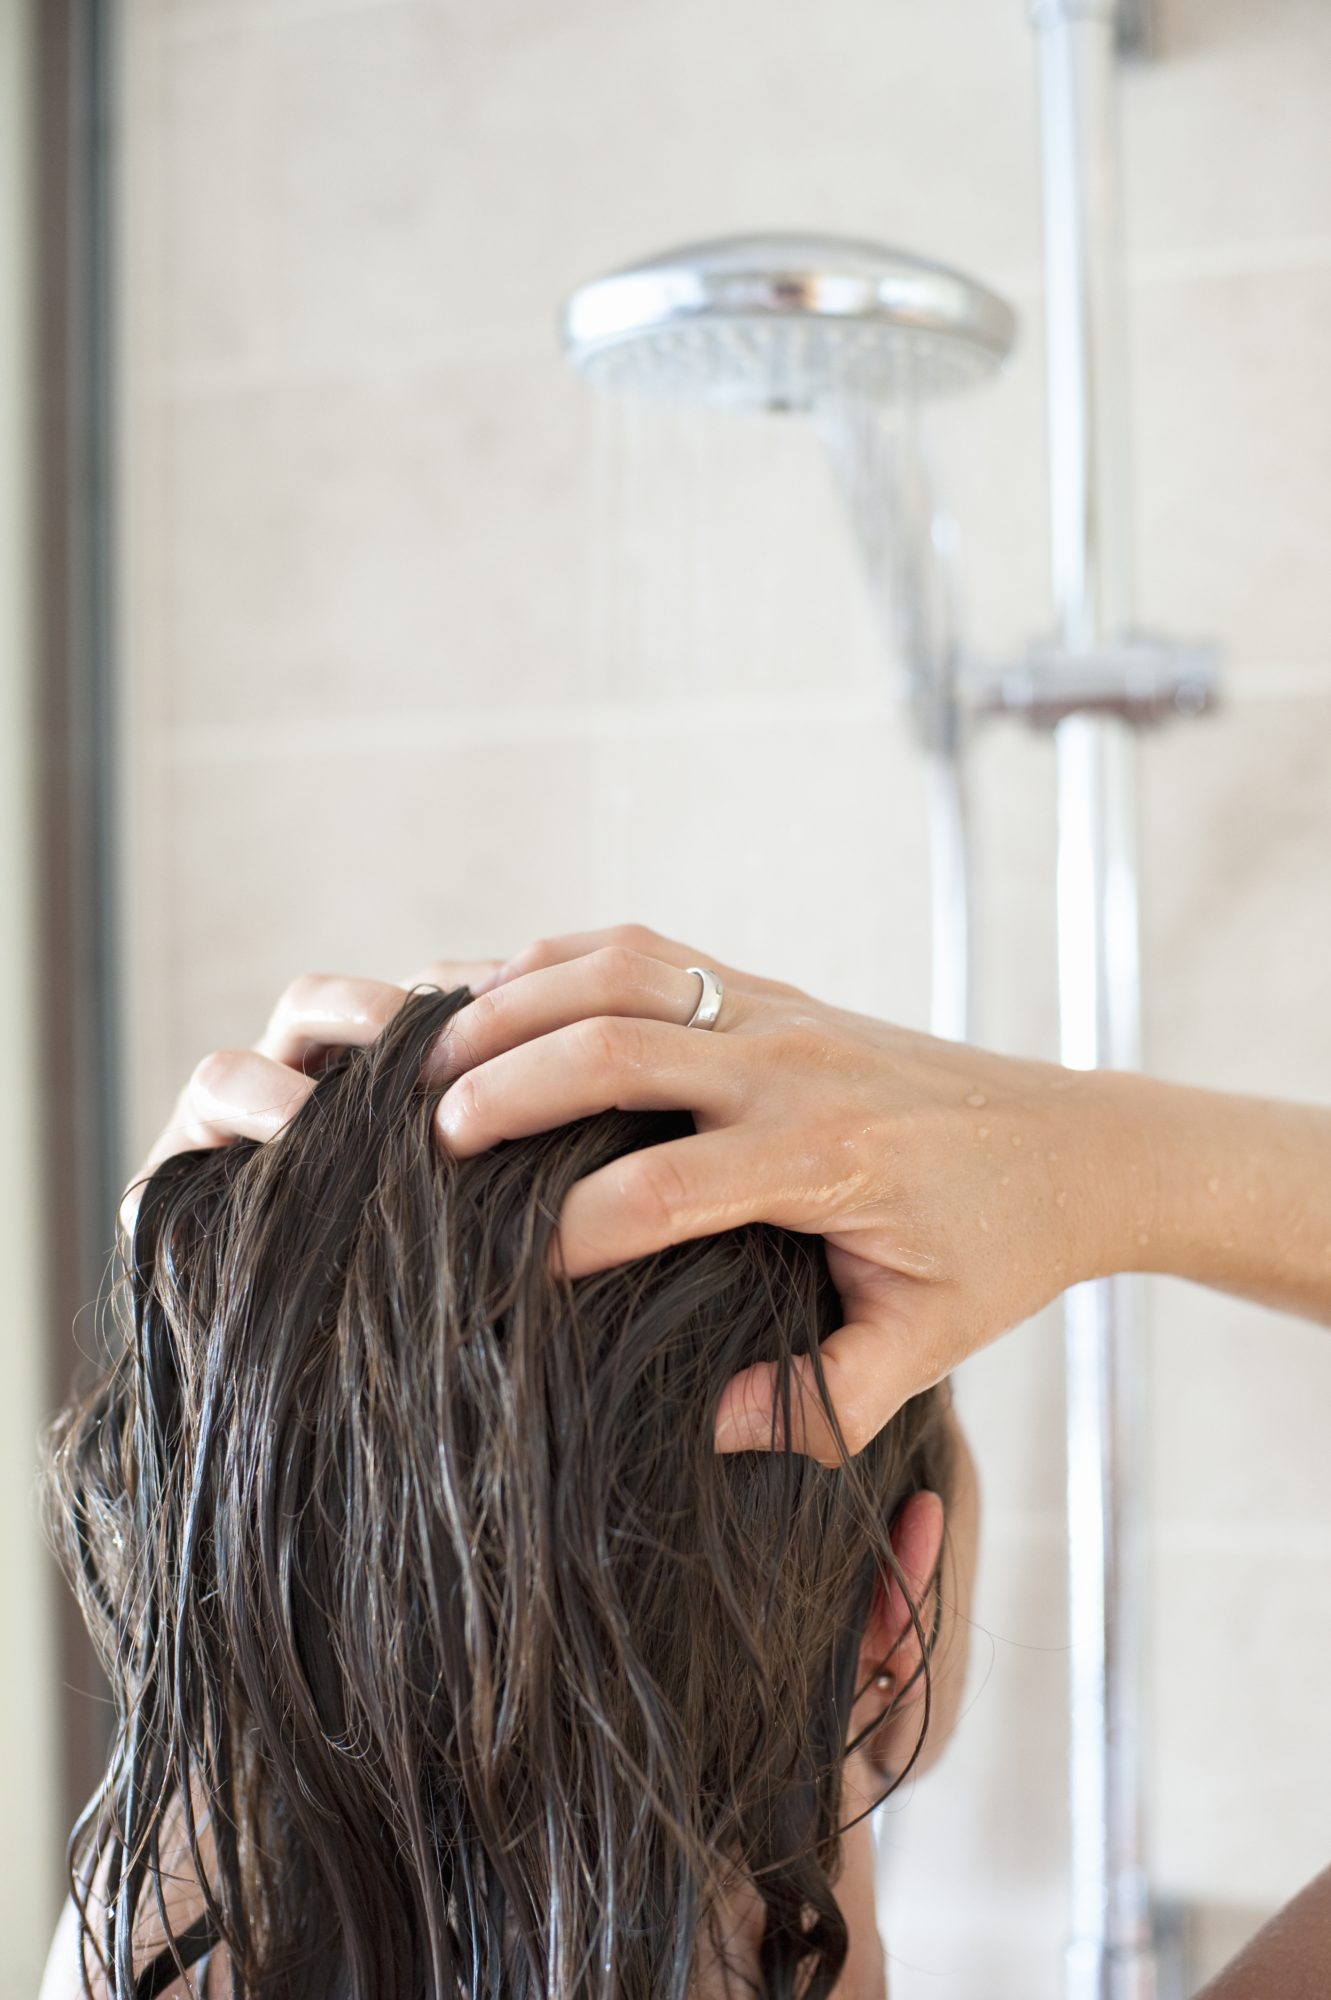 washing-hair-shower-scalp